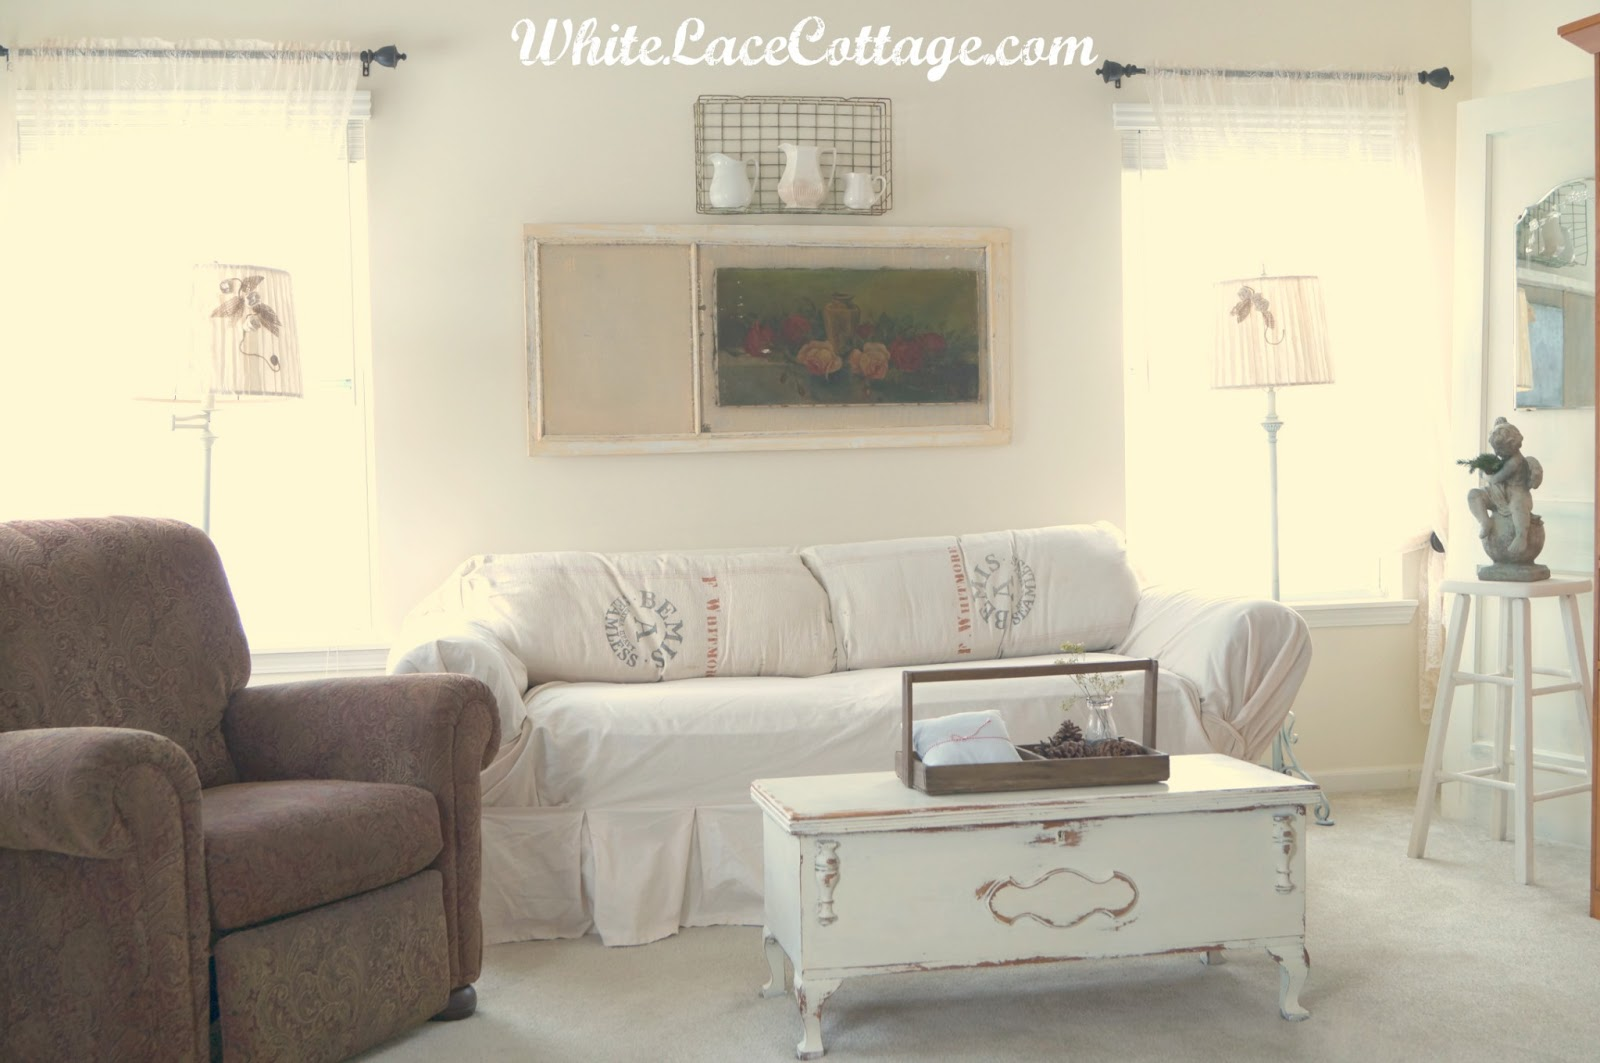 Off White Slipcover Sofa Sets For Living Room Online And A Mantle Change - Lace Cottage